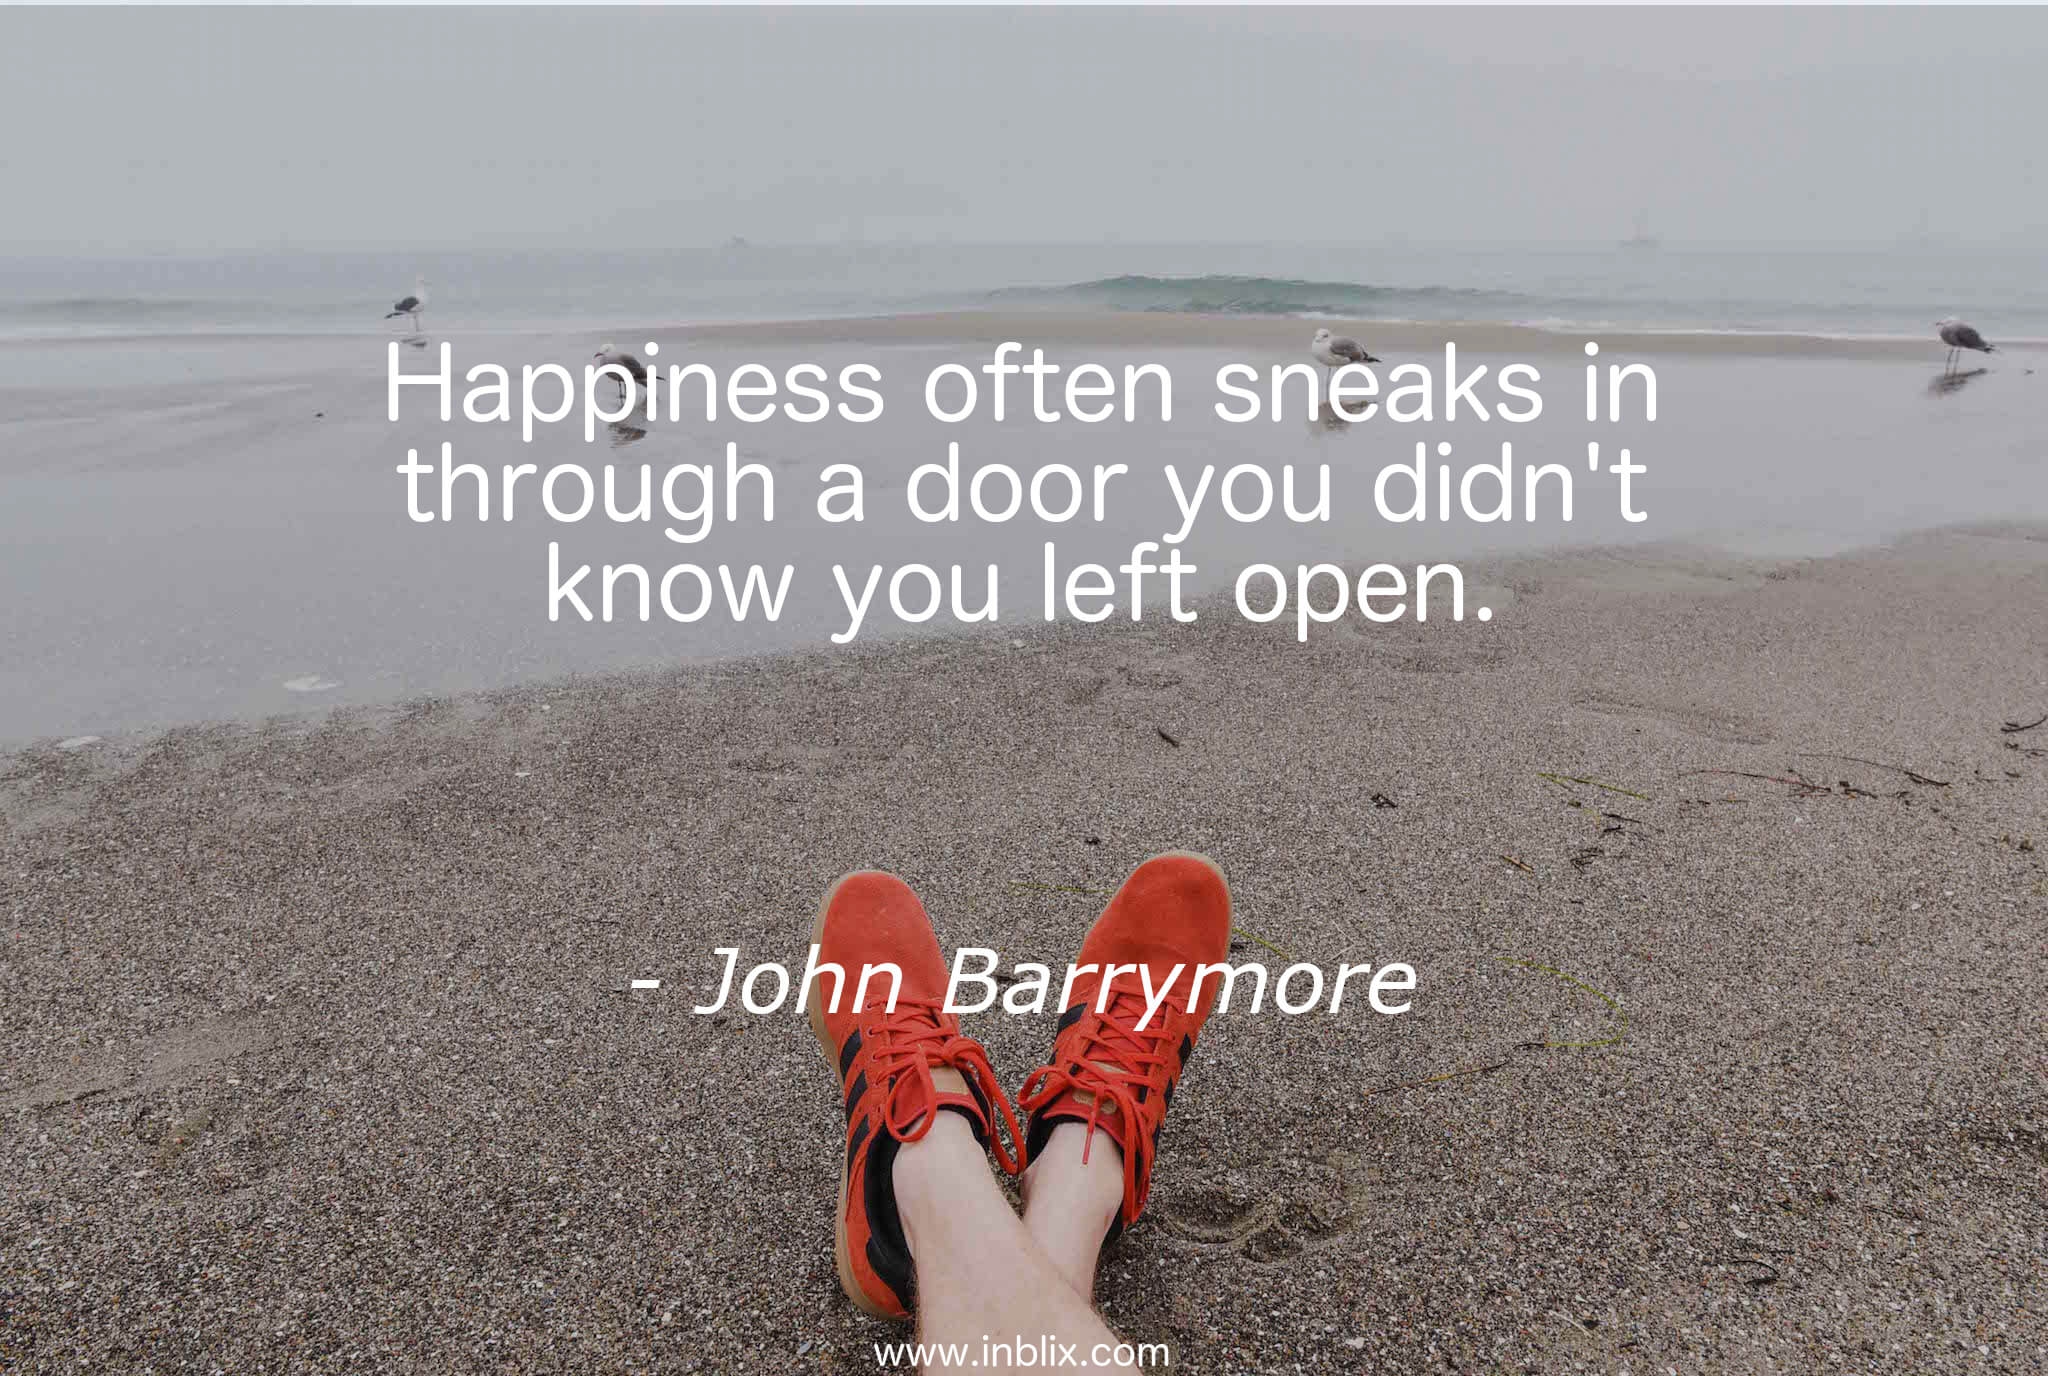 Happiness often sneaks in through a door you didn't know you left open.